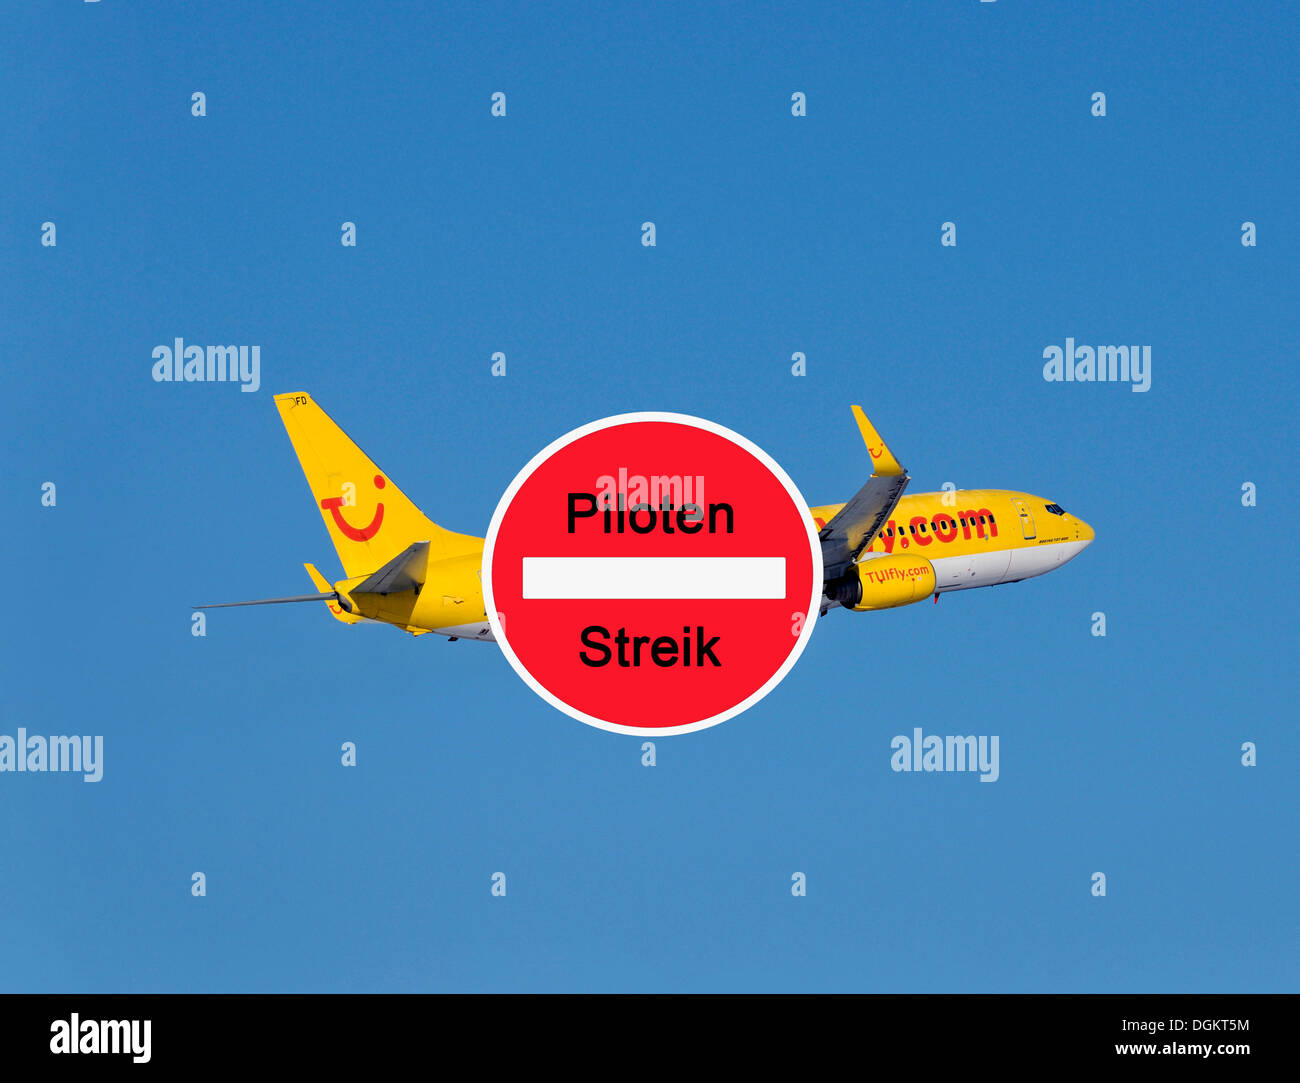 Sign with lettering 'Piloten Streik', German for 'Pilots on strike', sign in front of a TUI plane - Stock Image